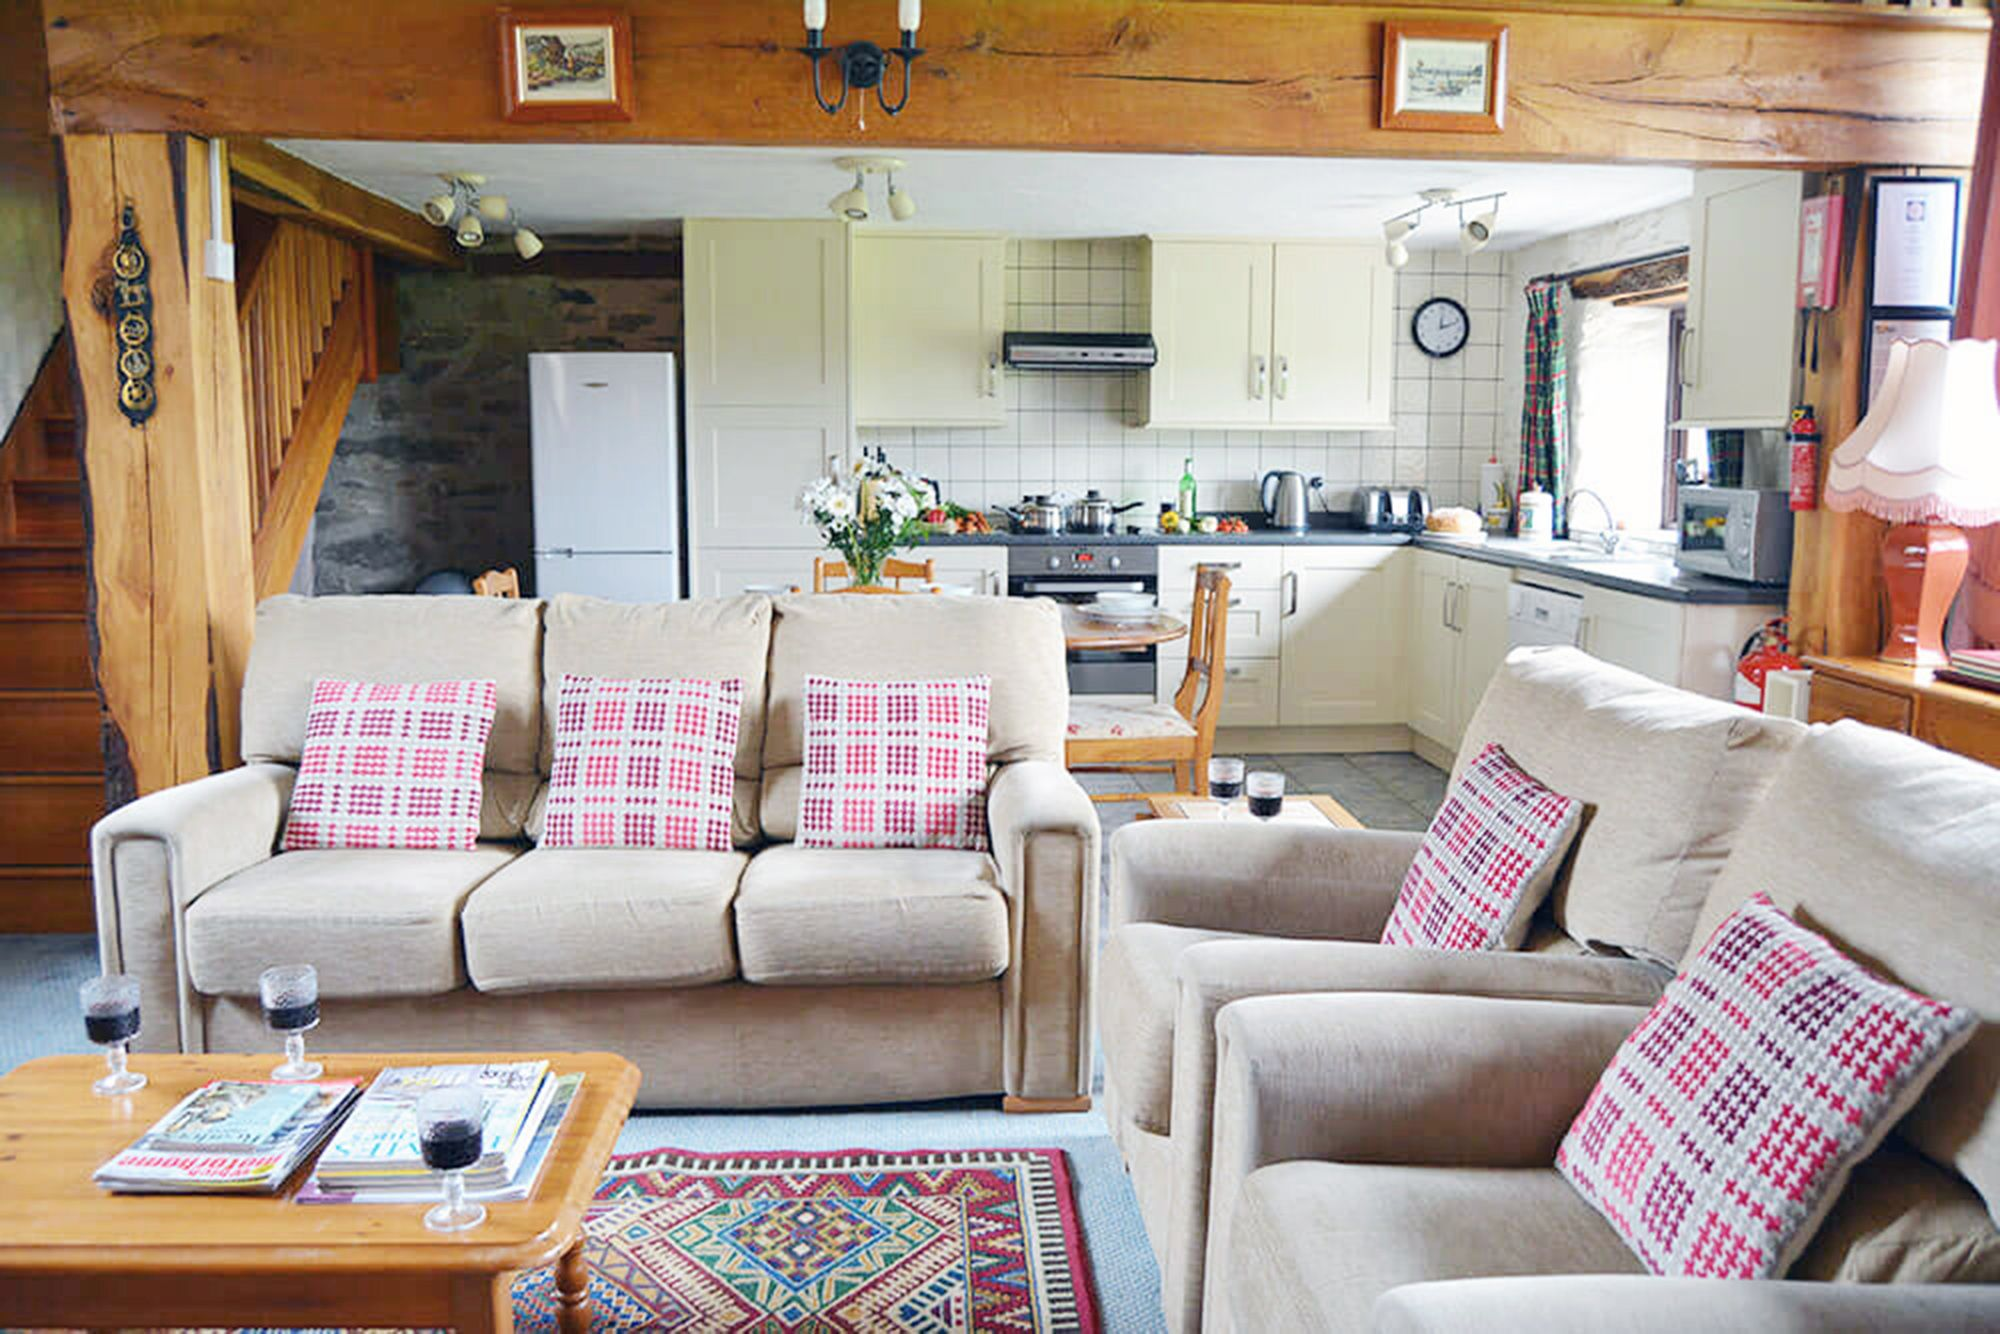 Kiri Cottage ground floor: Spacious open plan living space comprising a sitting area, dining area and fitted kitchen area